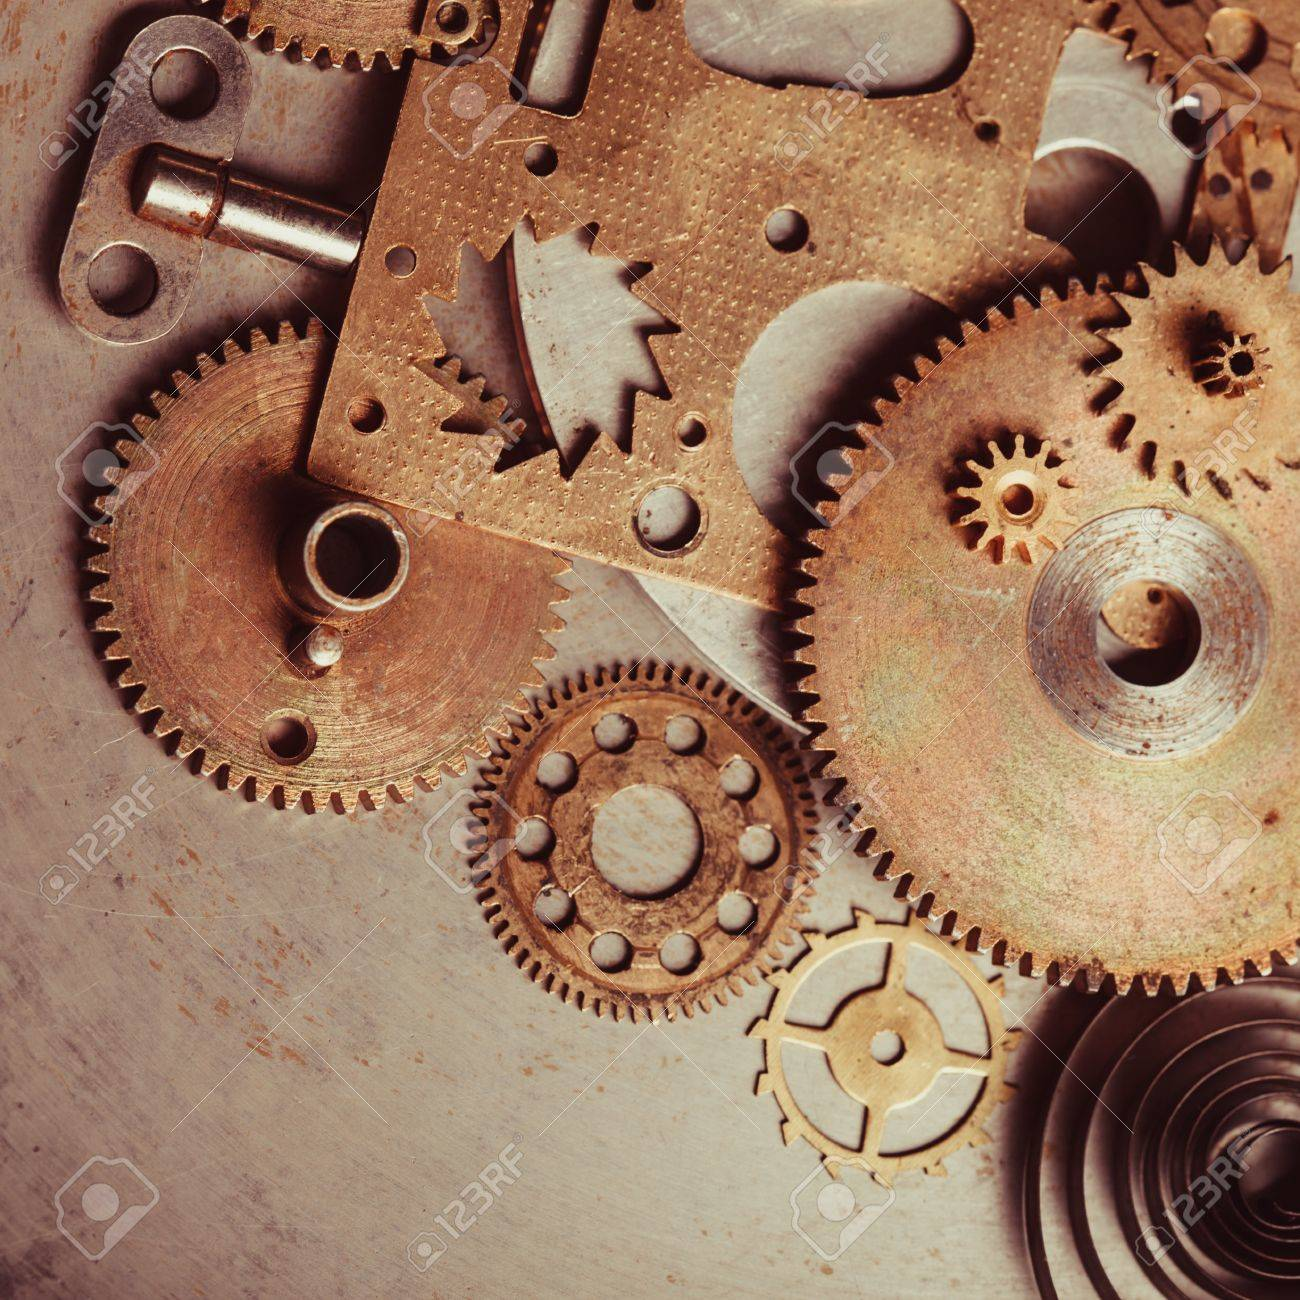 steampunk background from mechanical clocks details over old metal background inside the clock gears